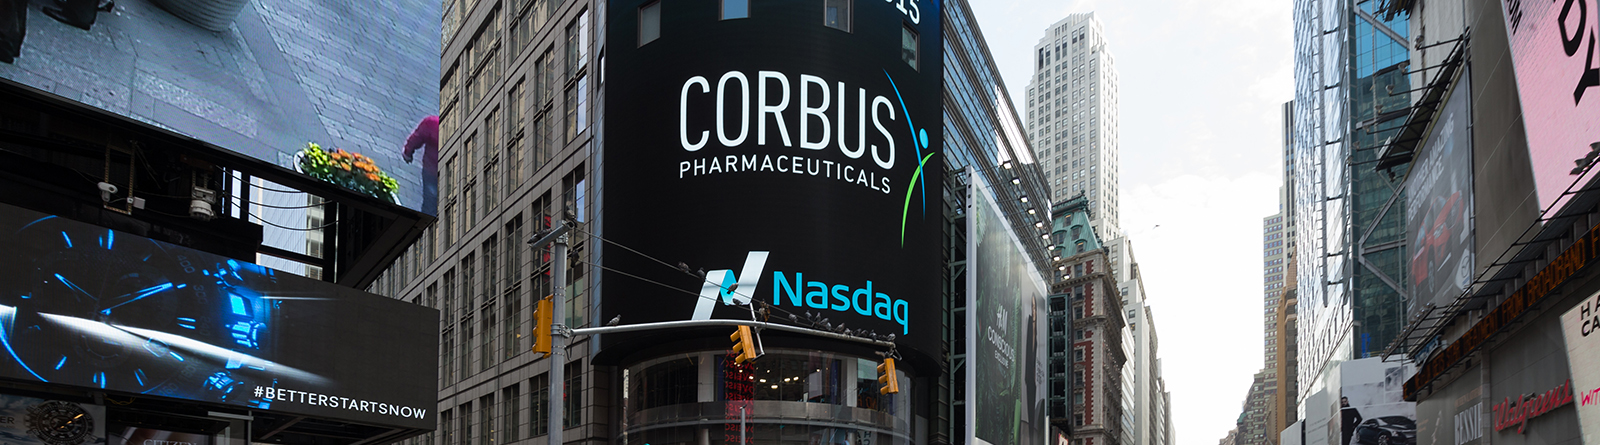 Corbus Pharmaceuticals Announces Proposed Public Offering of Common Stock Banner